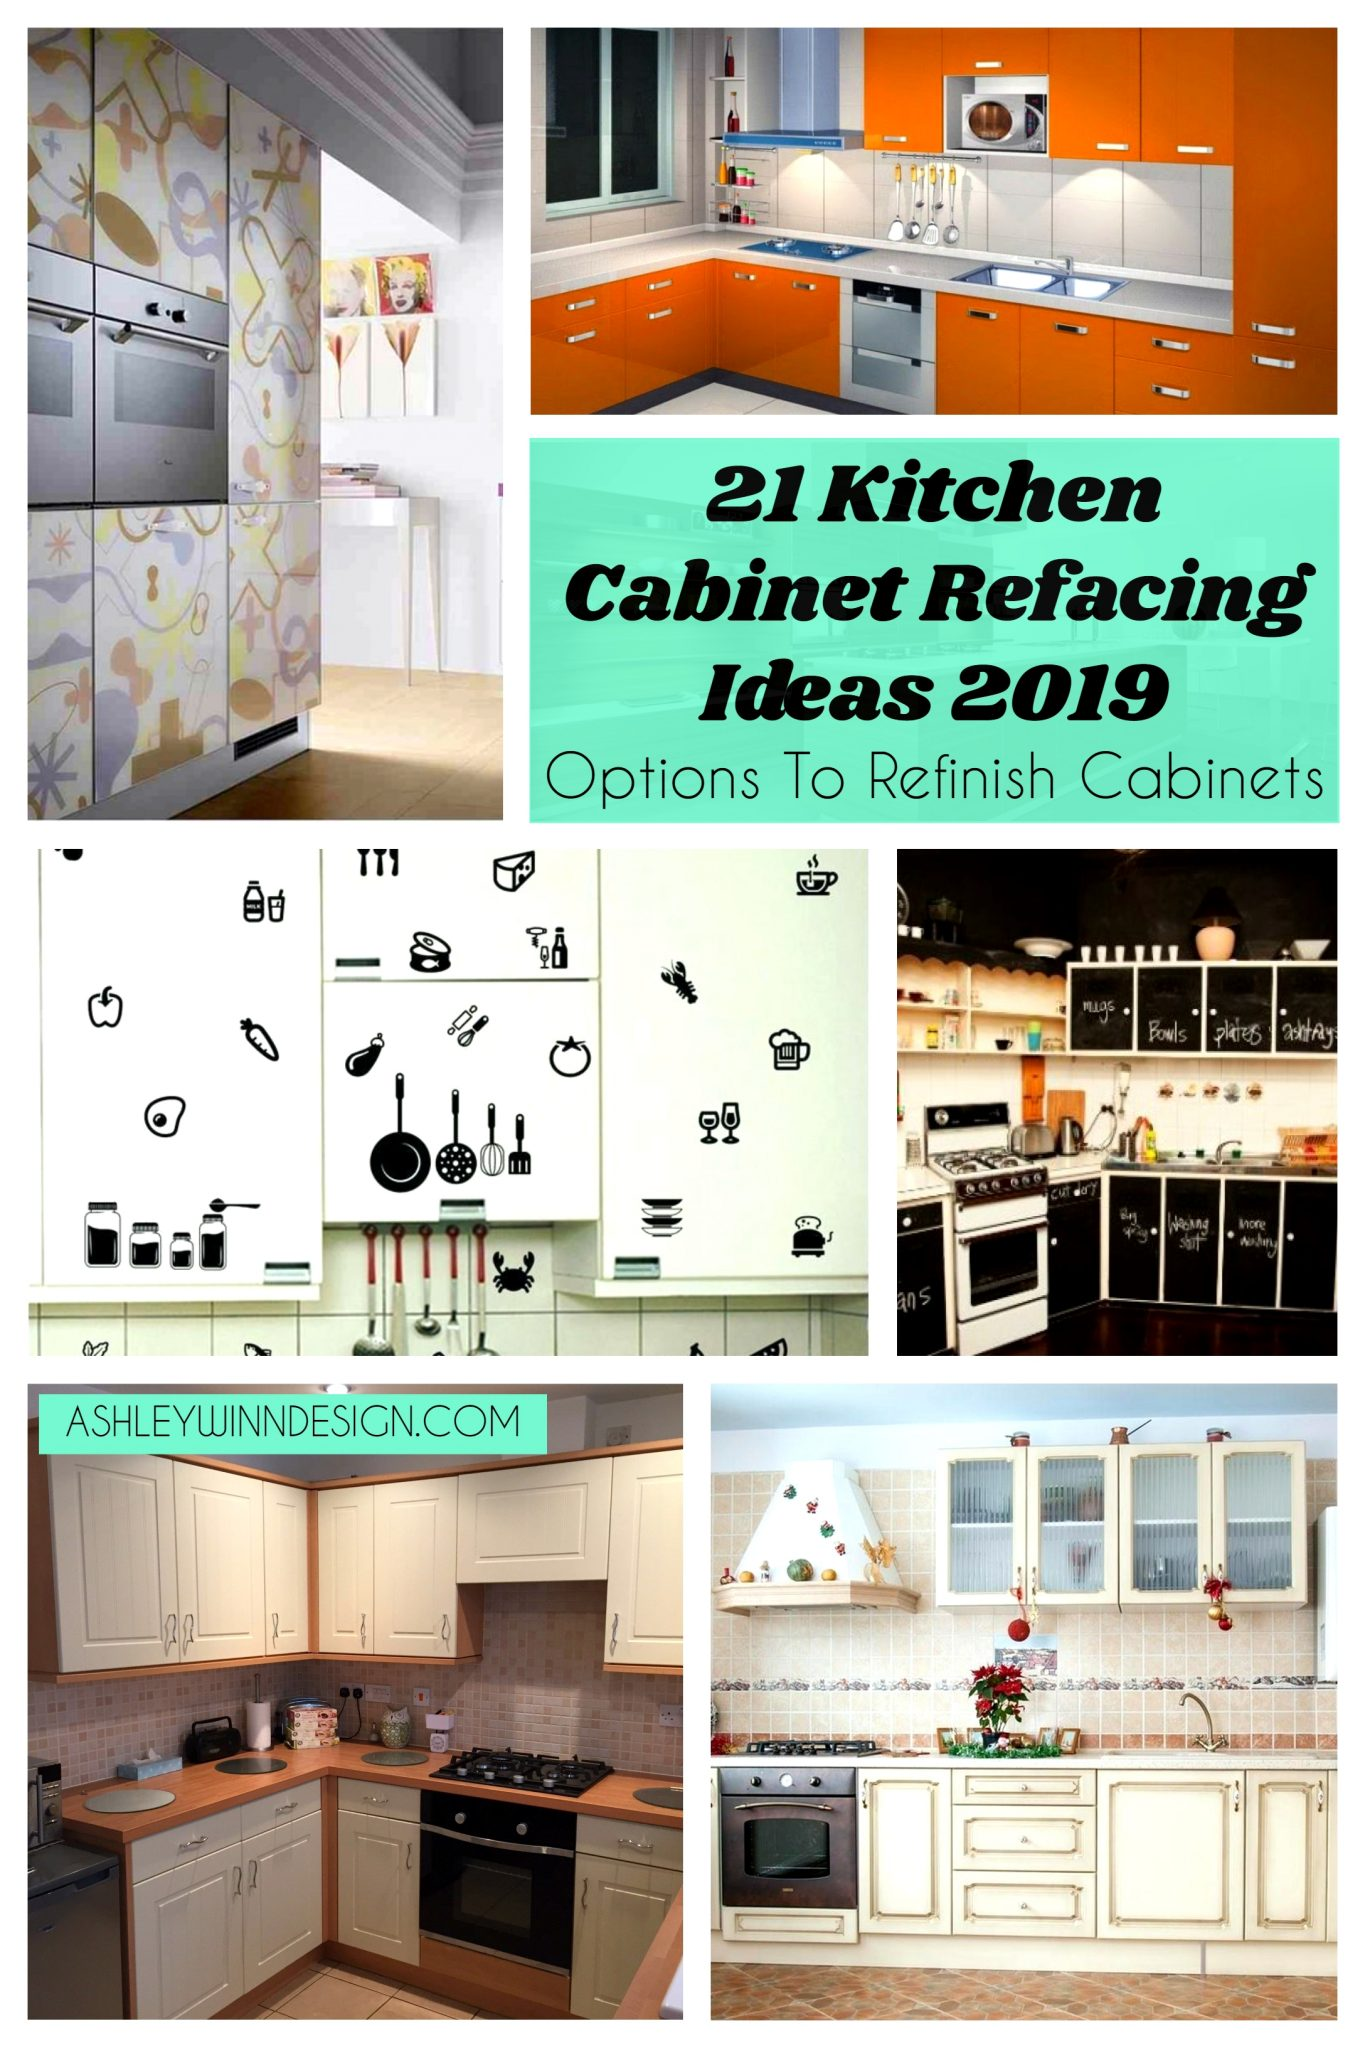 kitchen cabinet reface raymour and flanigan sets 21 refacing ideas 2019 options to refinish cabinets